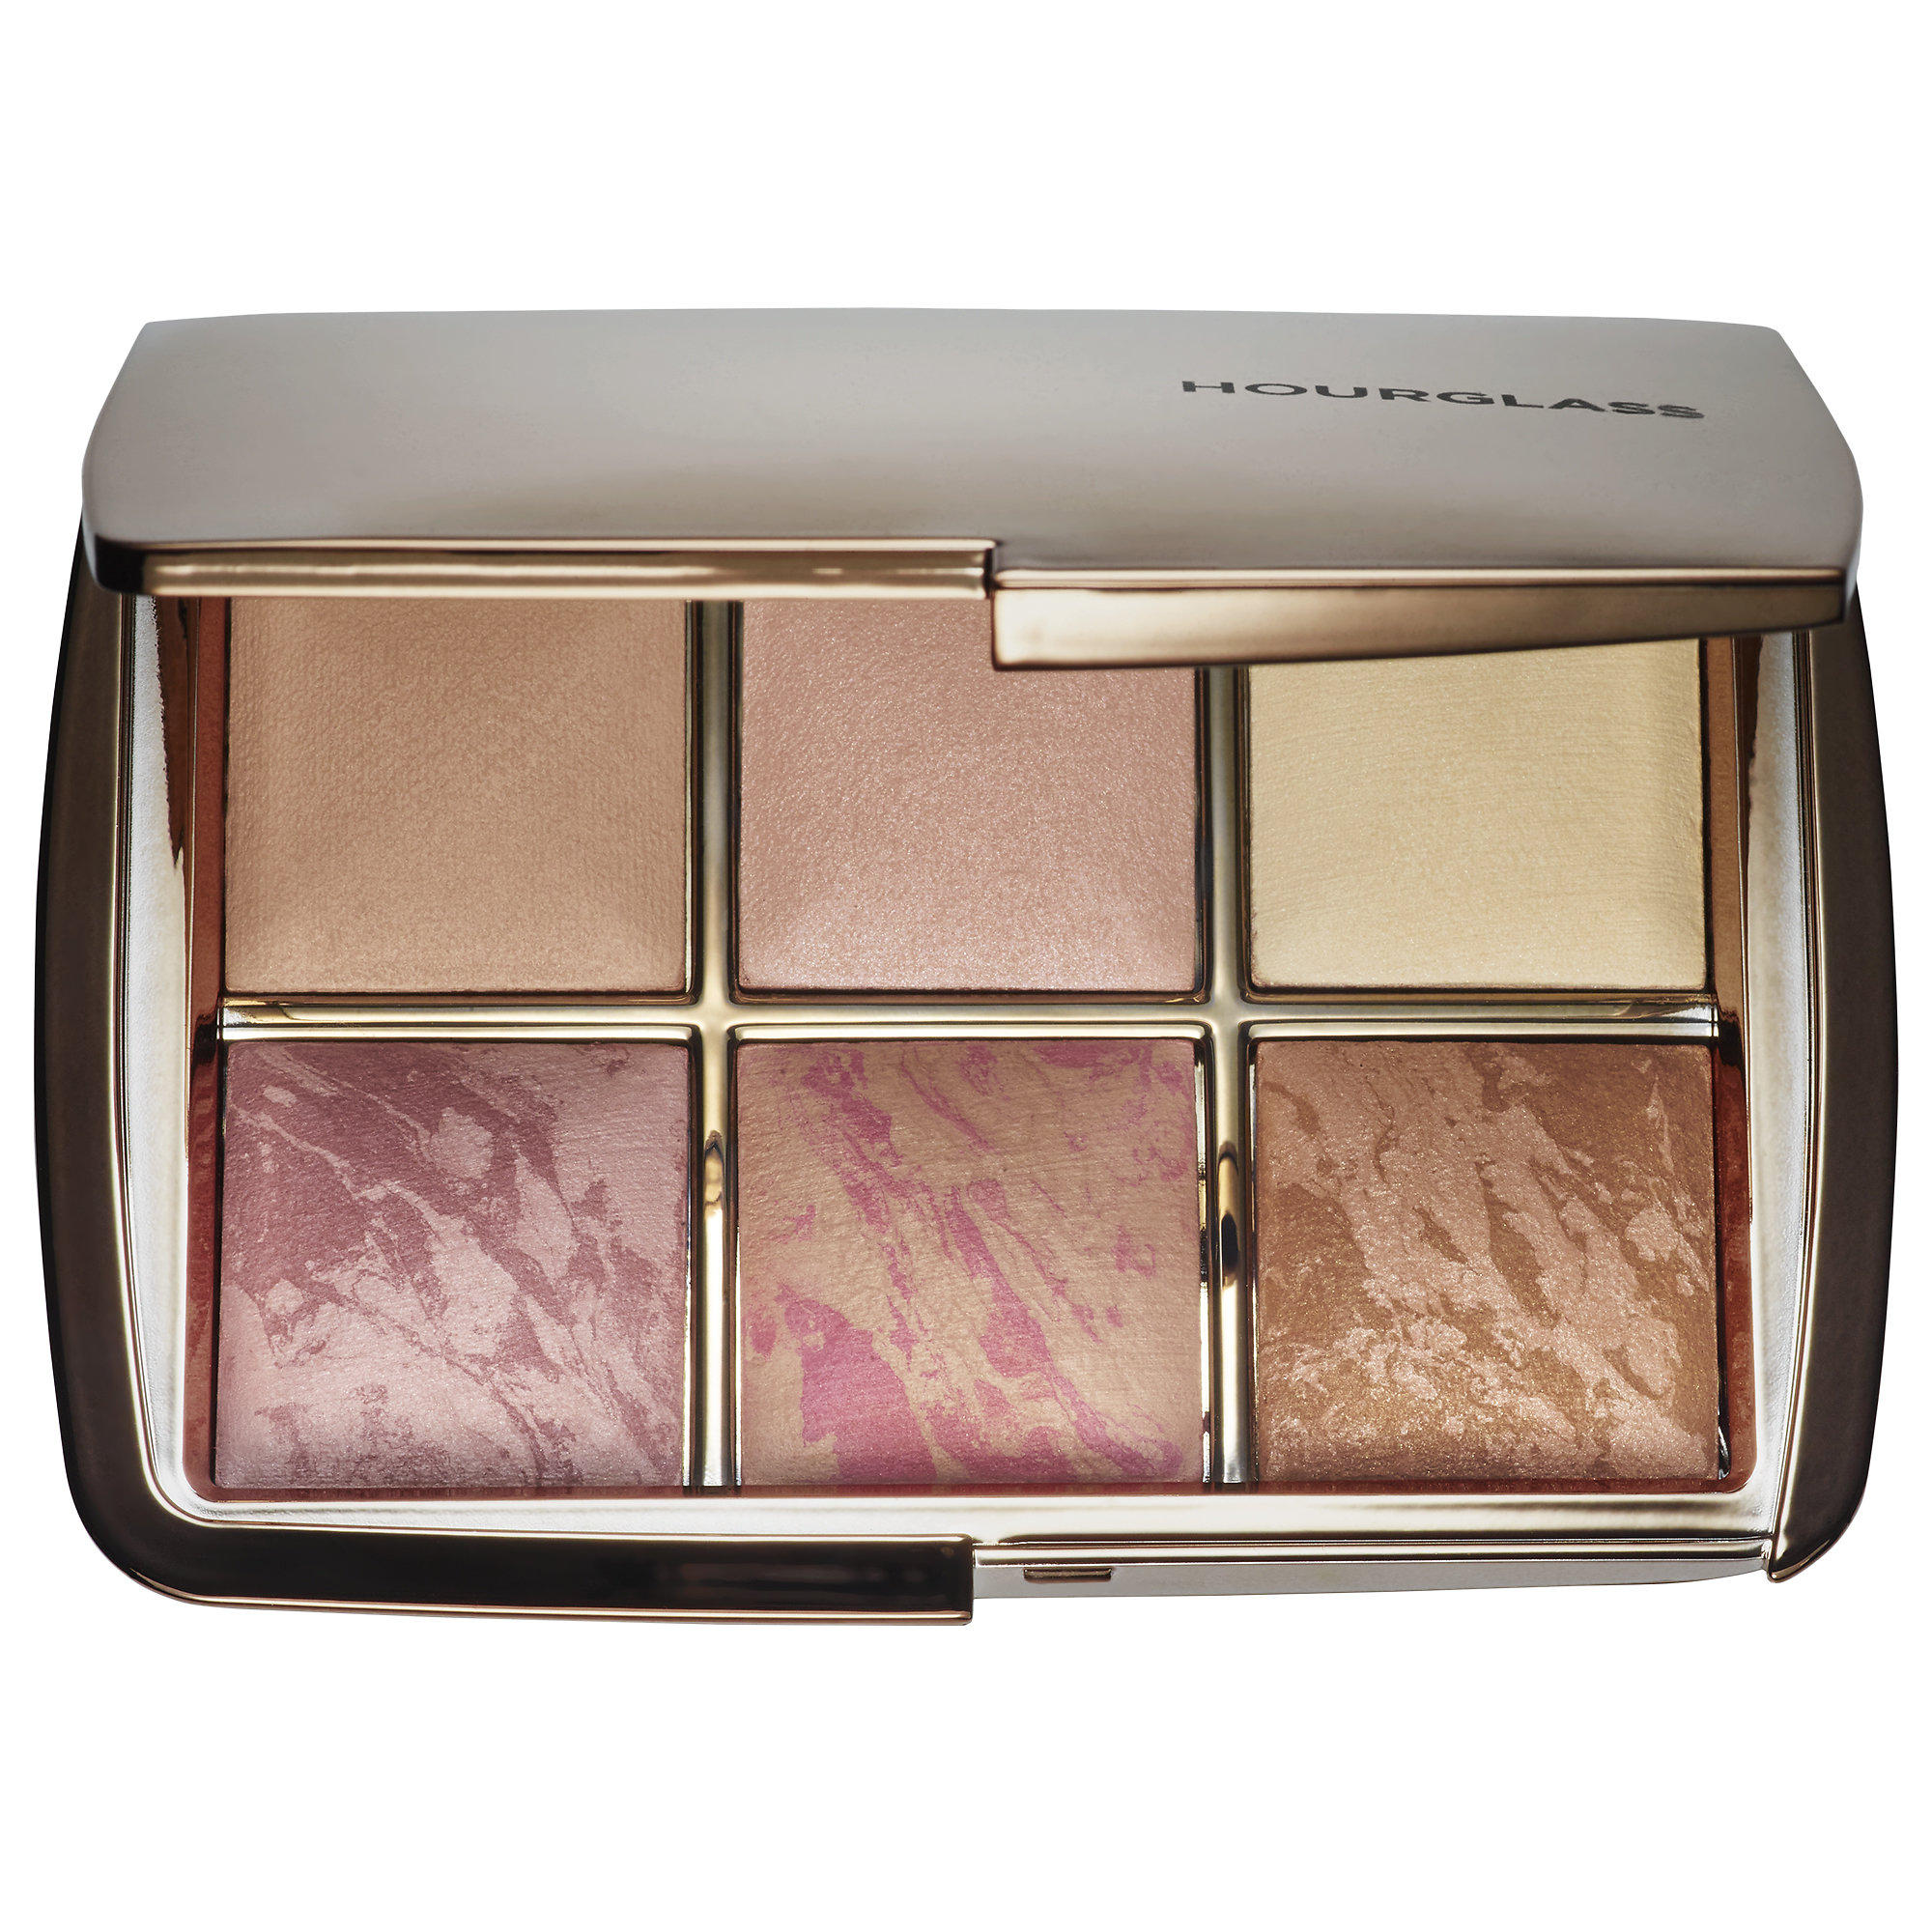 Hourglass launched New Ambient Lighting Edit